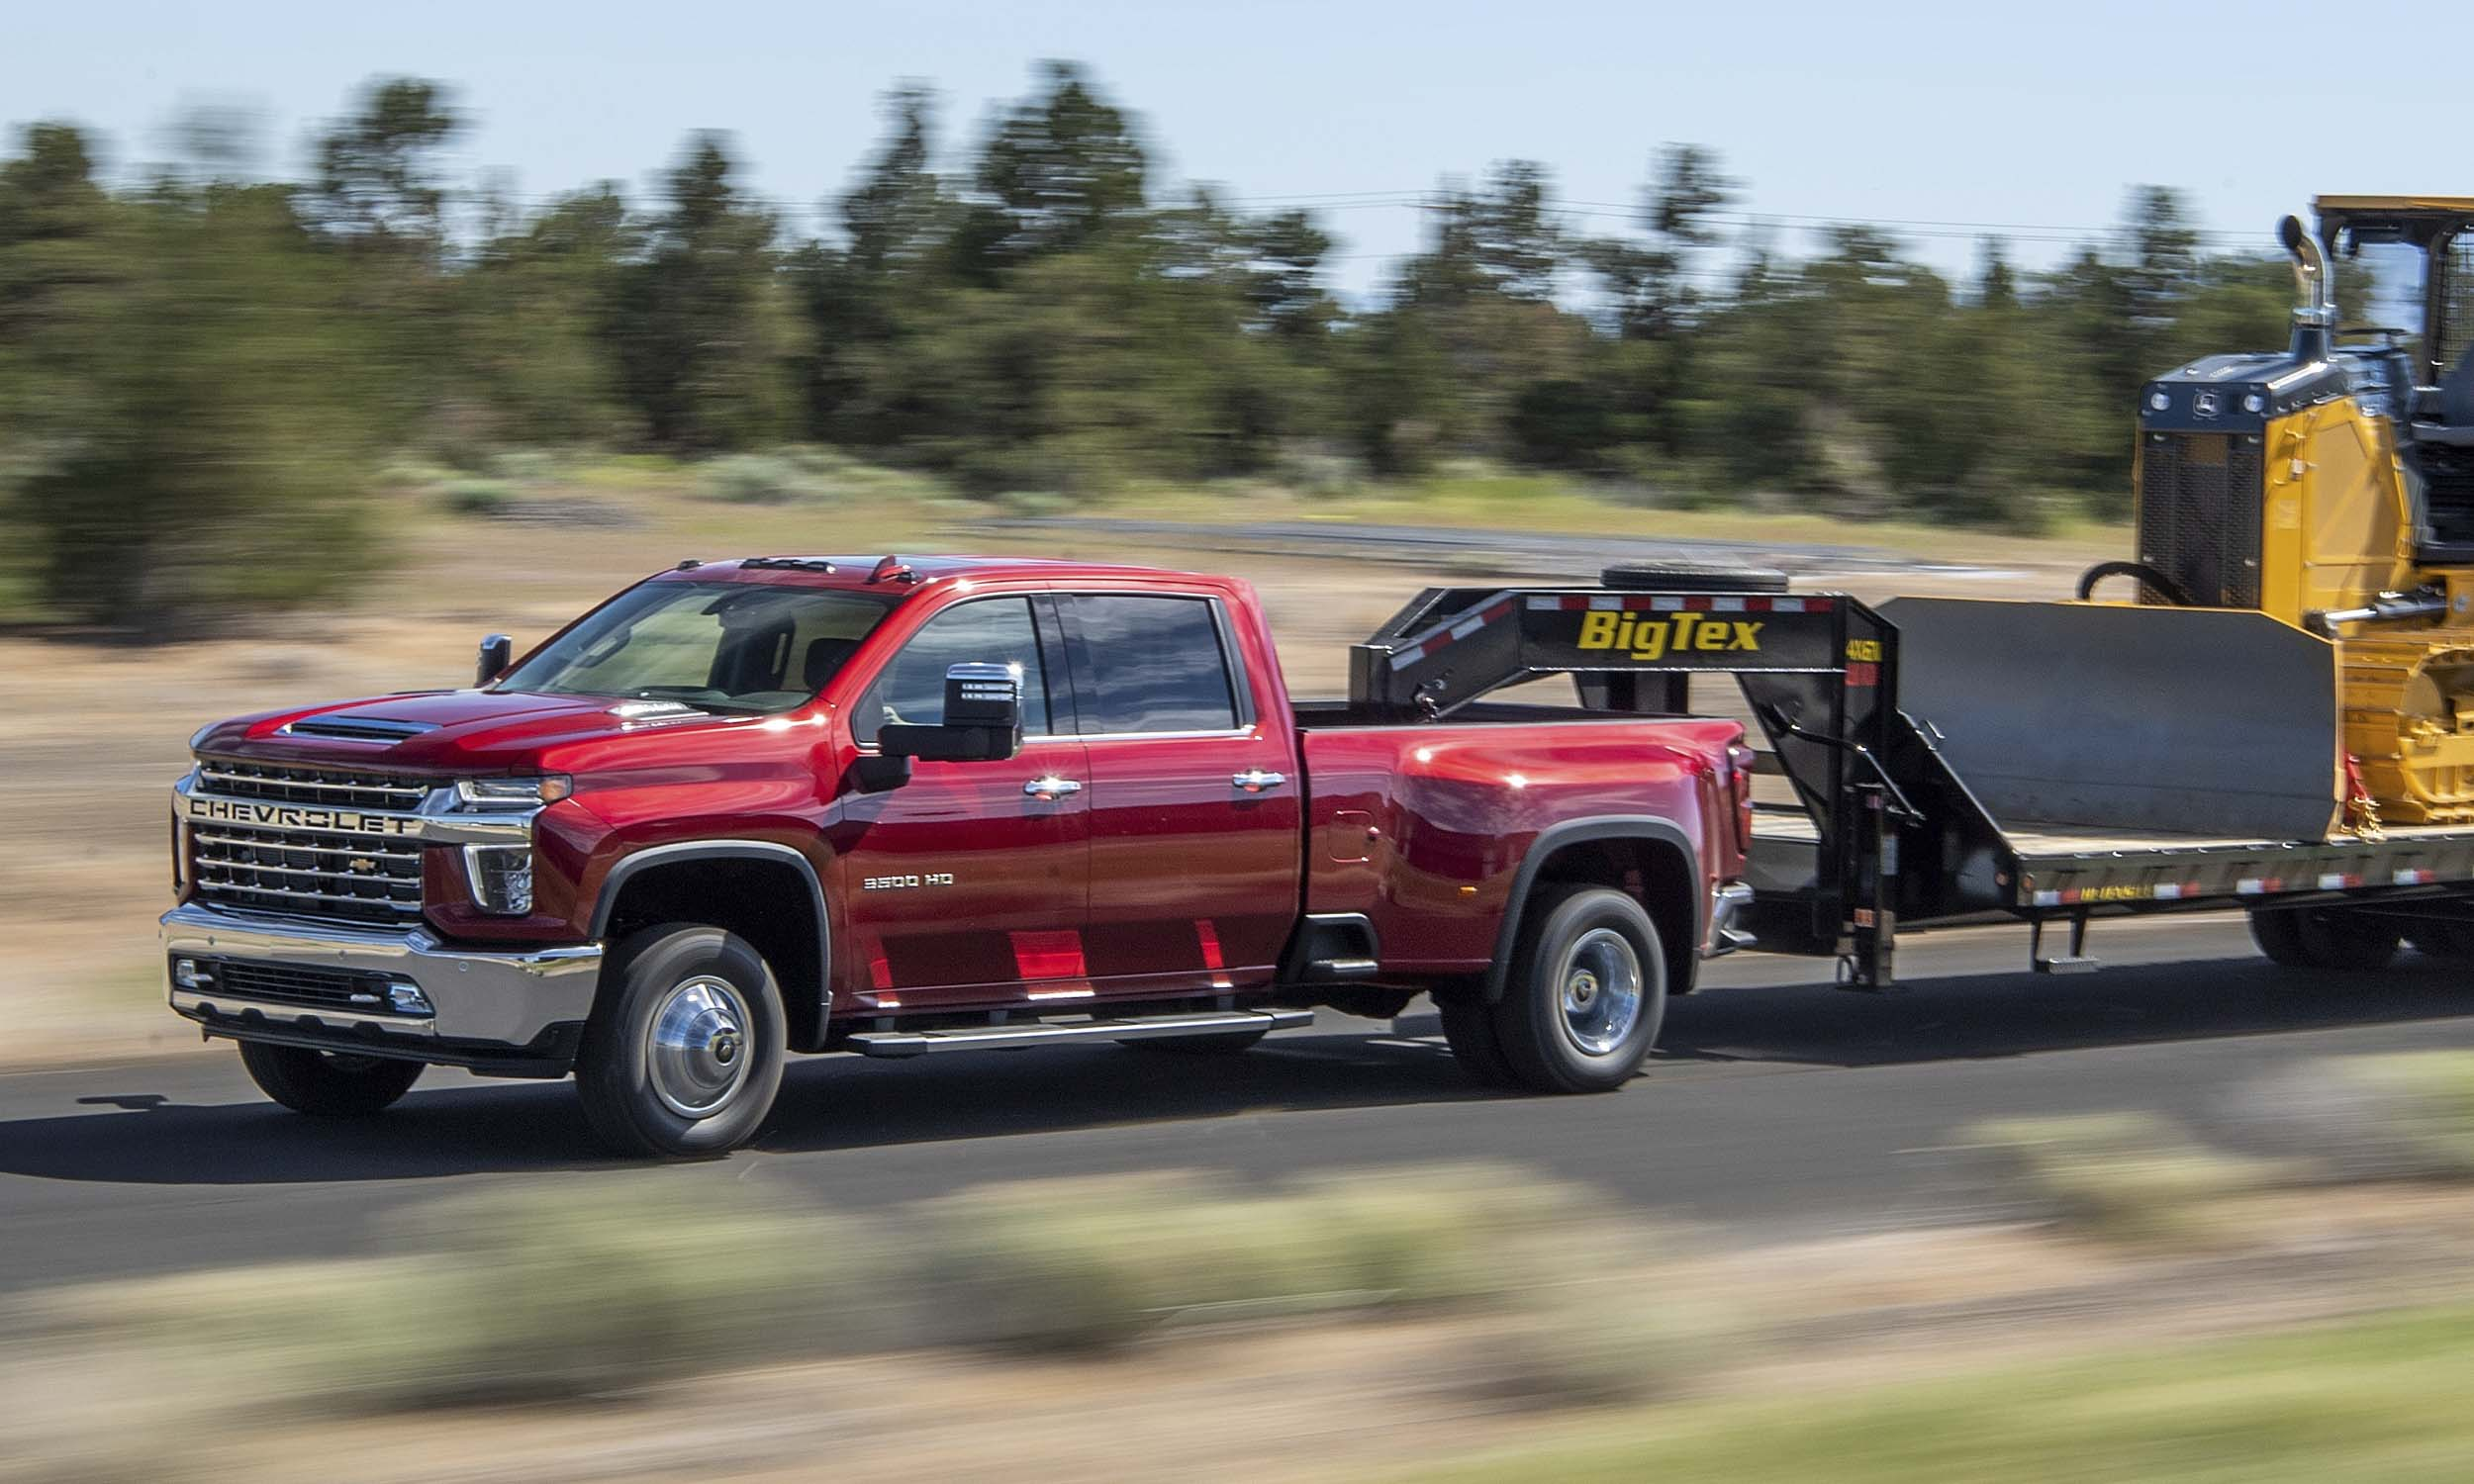 Pickup Truck Extremes Affordable and Extravagantnbsp